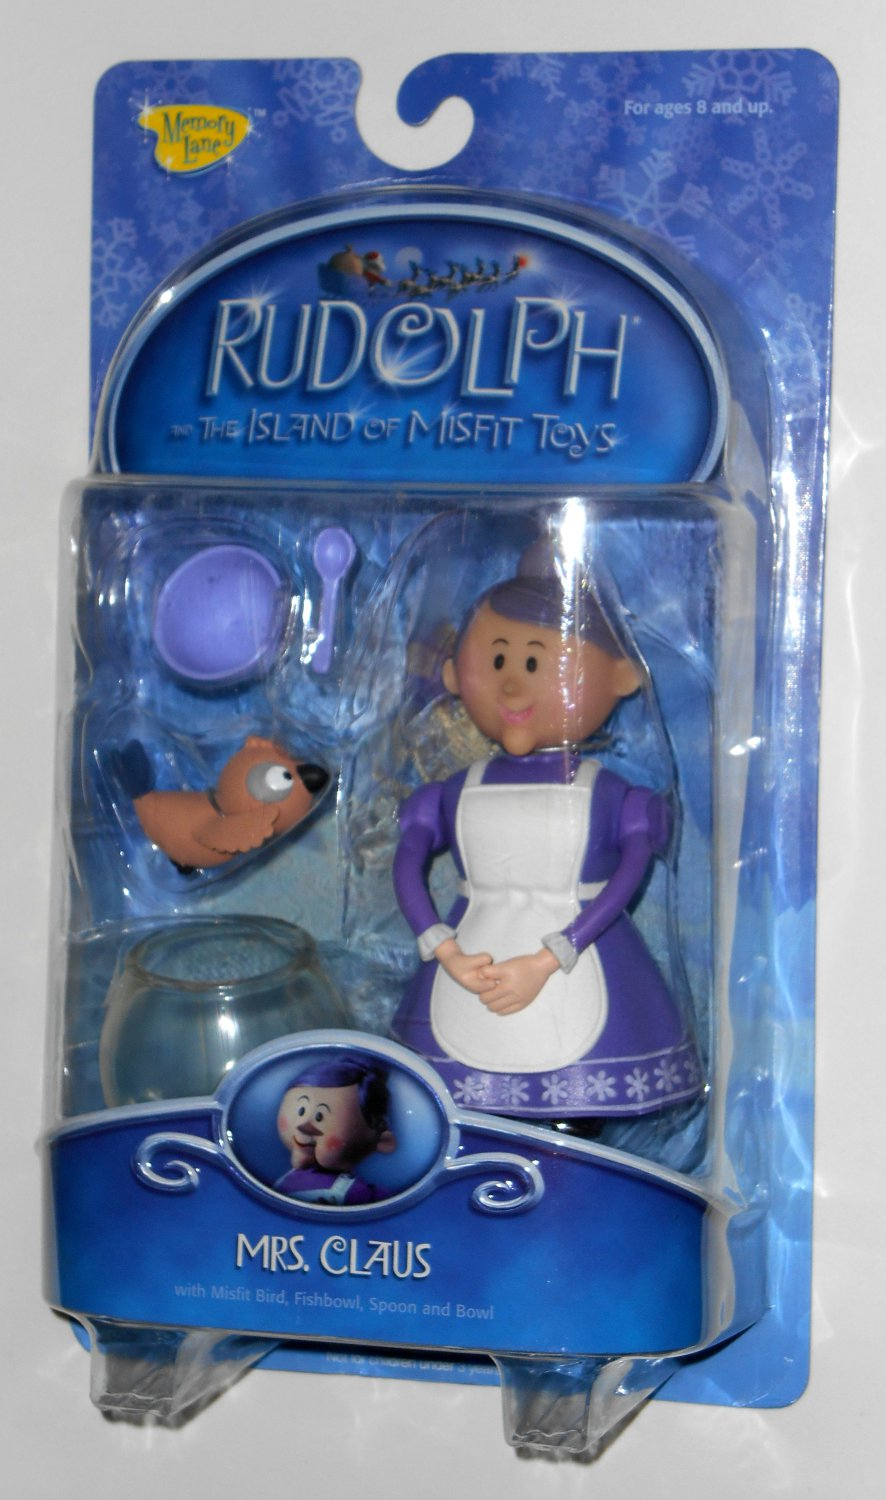 Santa Claus Toys : Mrs santa claus action figure rudolph the island of